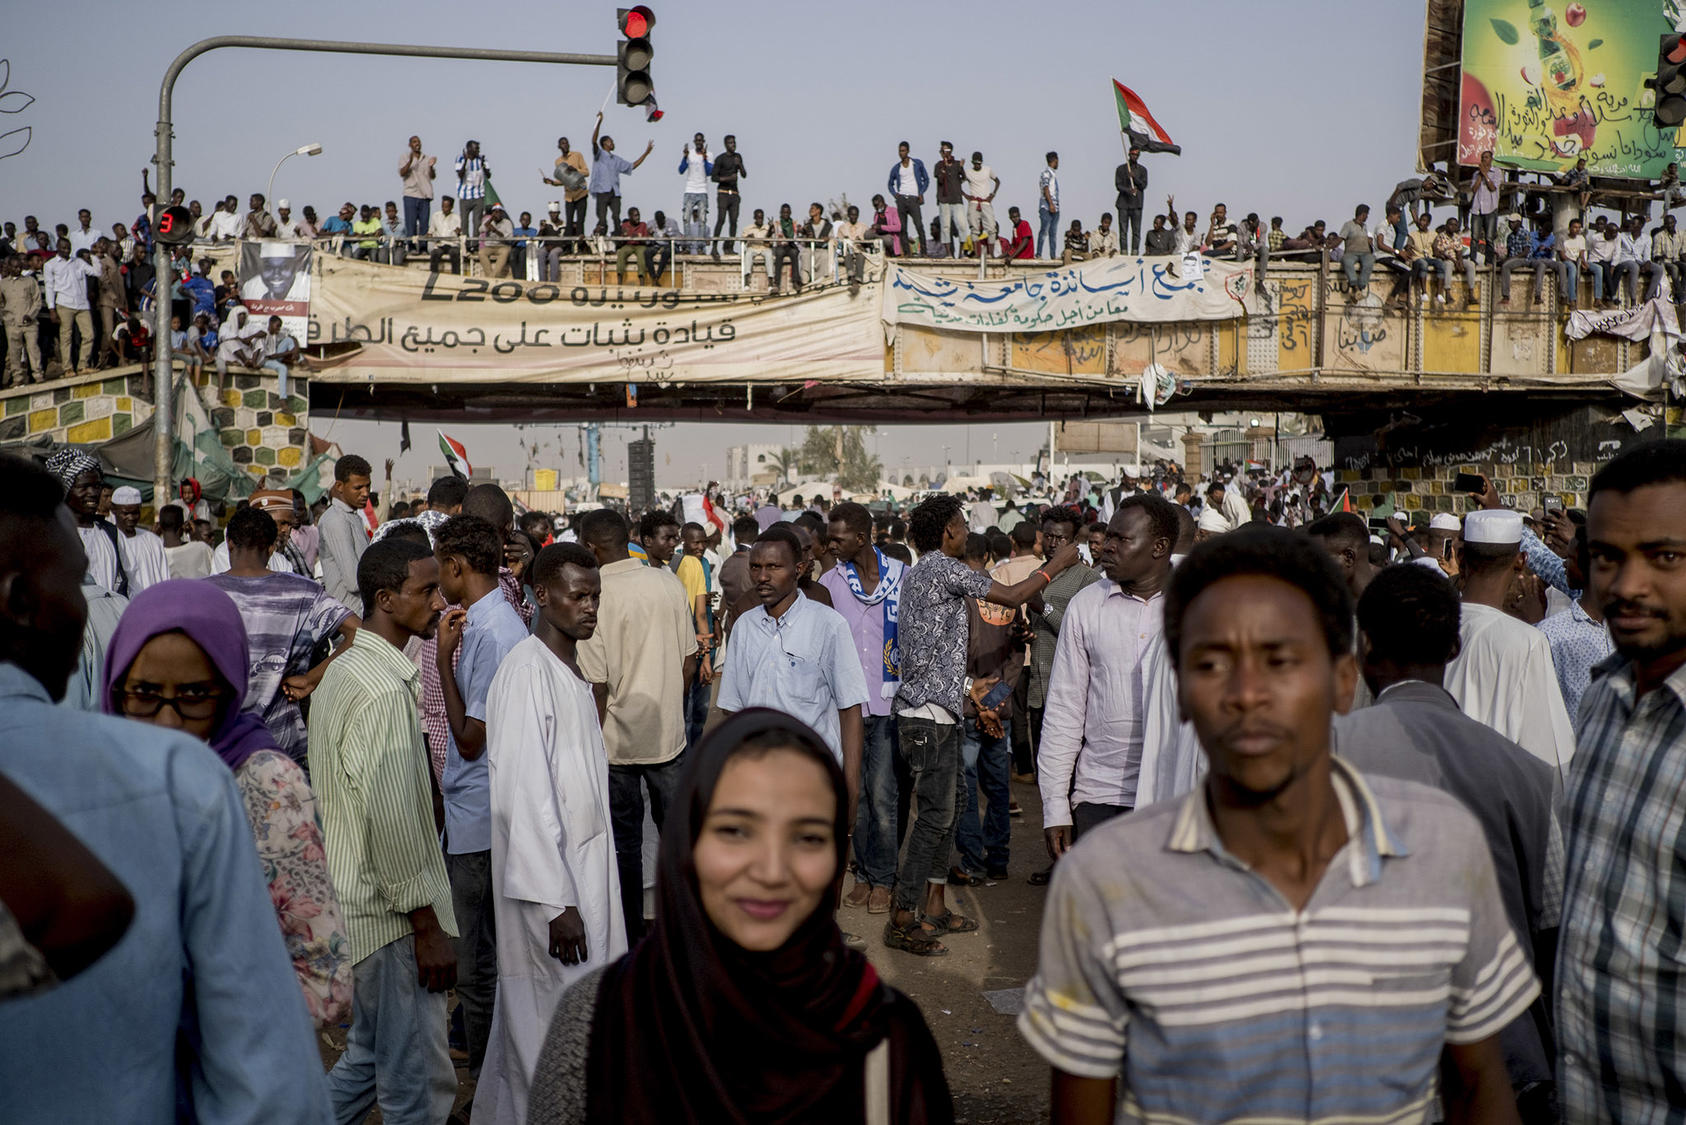 Young Sudanese rally for democracy at Sudan's military headquarters in 2019. The nonviolent ouster of longtime ruler Omar al-Bashir is one of many citizens' movements demanding more accountable governance across Africa. (Declan Walsh/The New York Times)